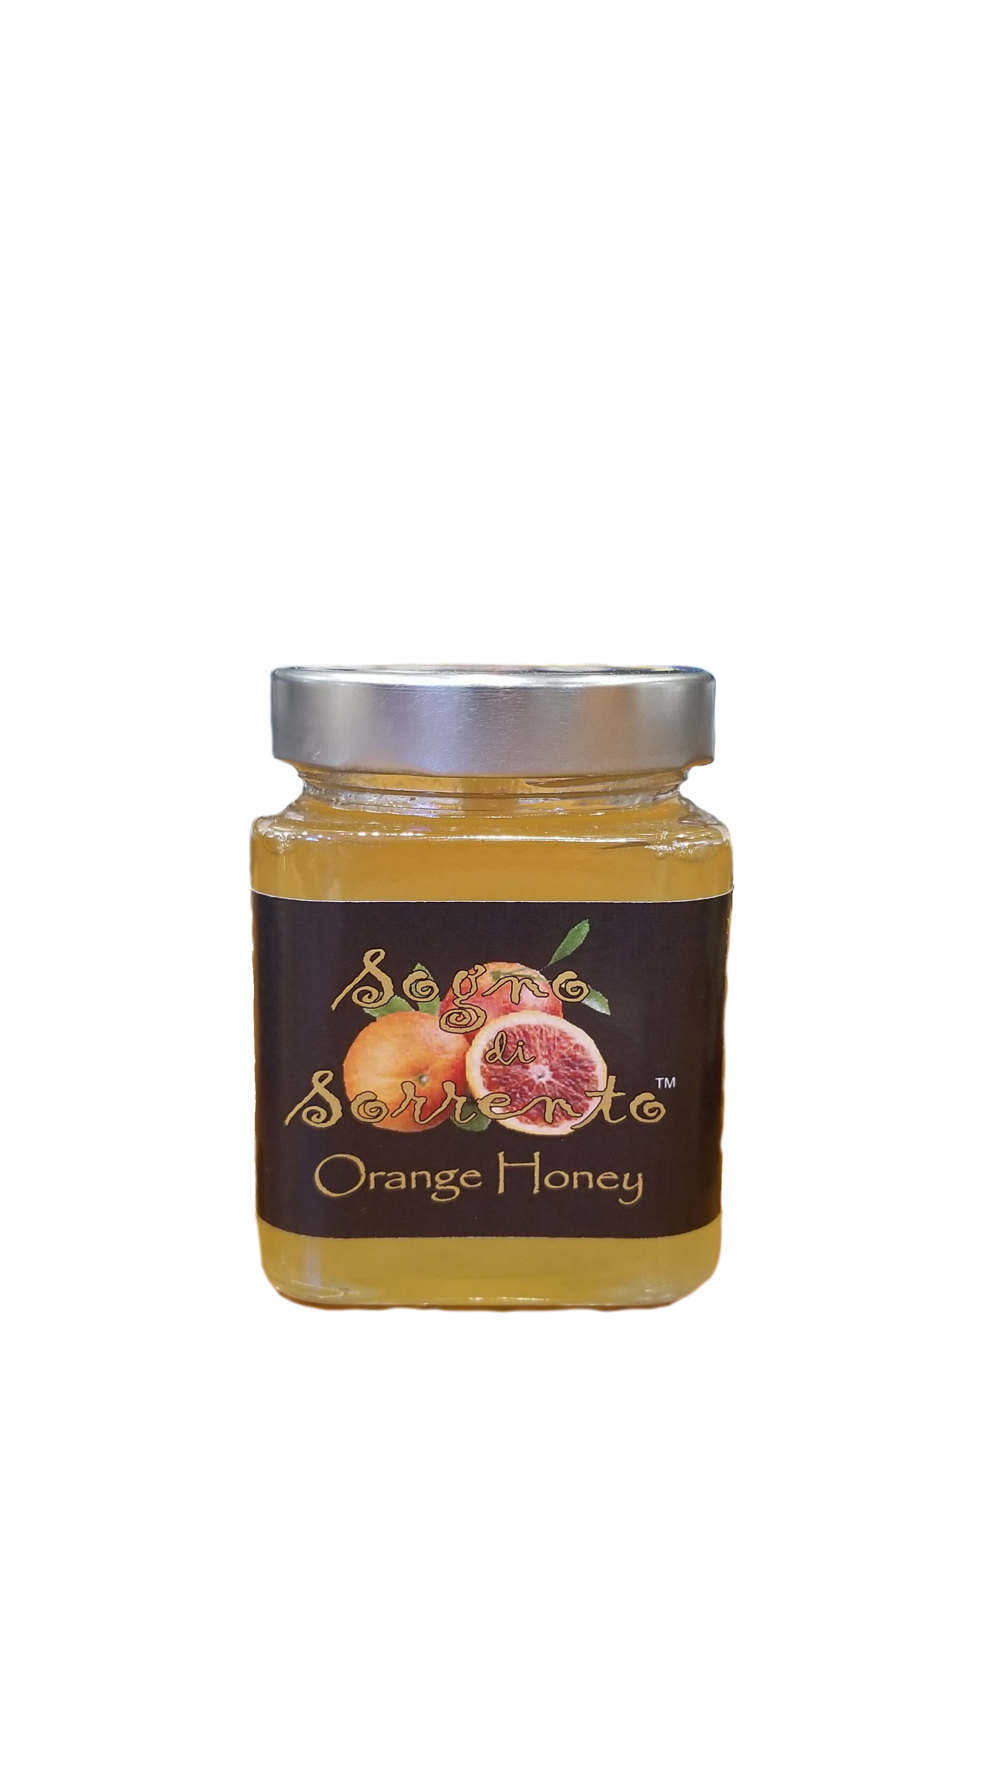 Sogno Orange Honey.png